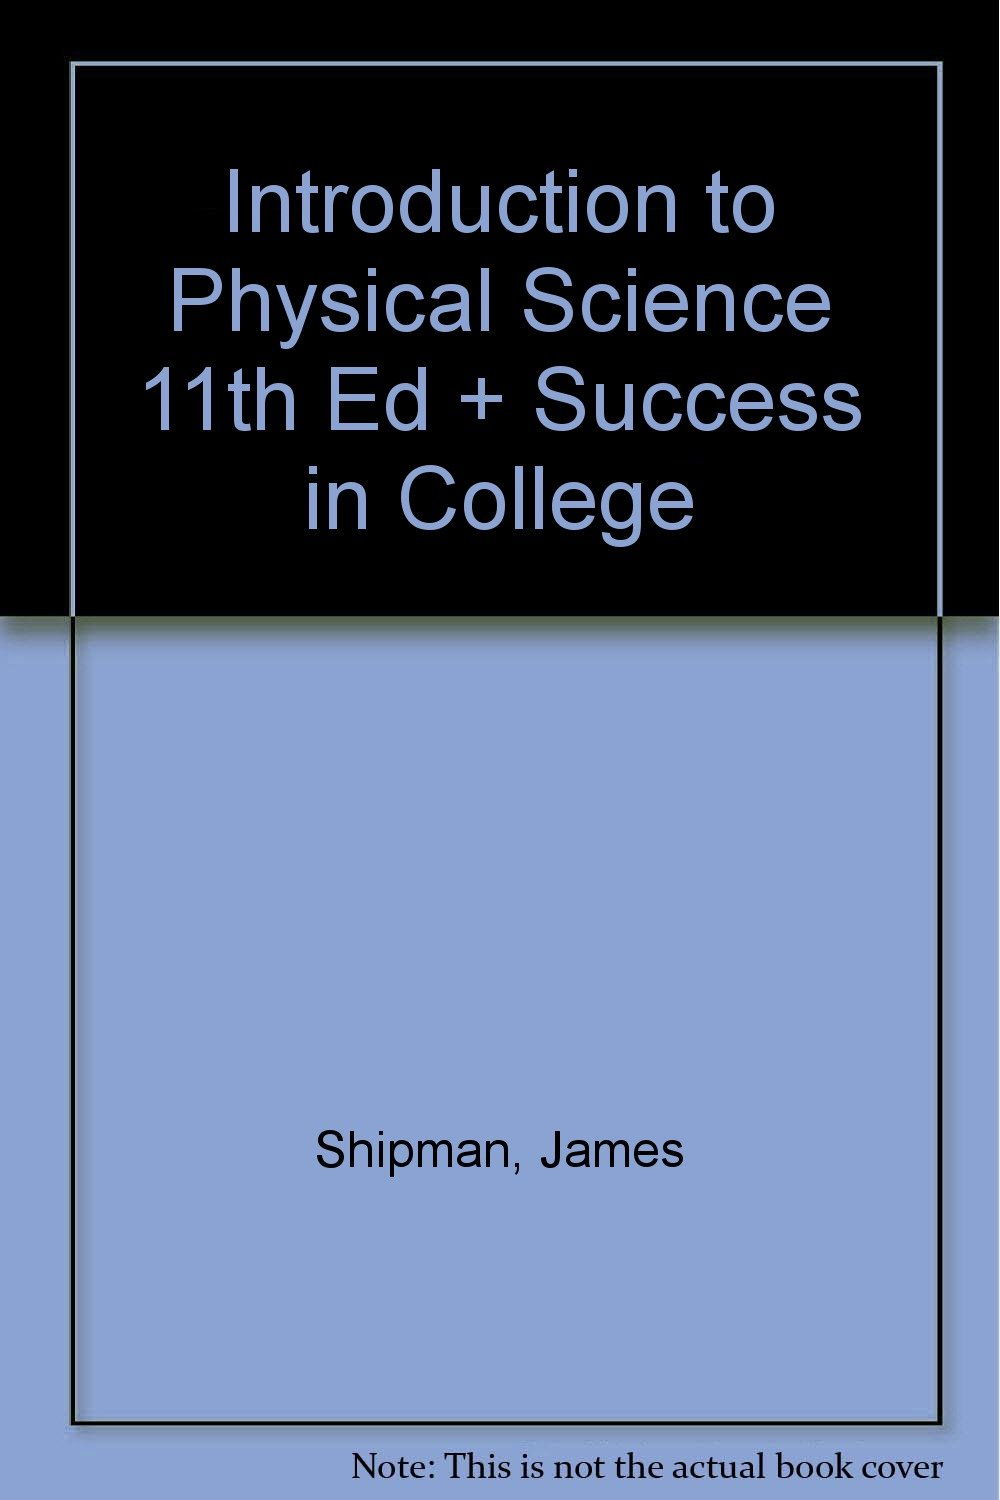 Download Introduction to Physical Science 11th Ed + Success in College PDF